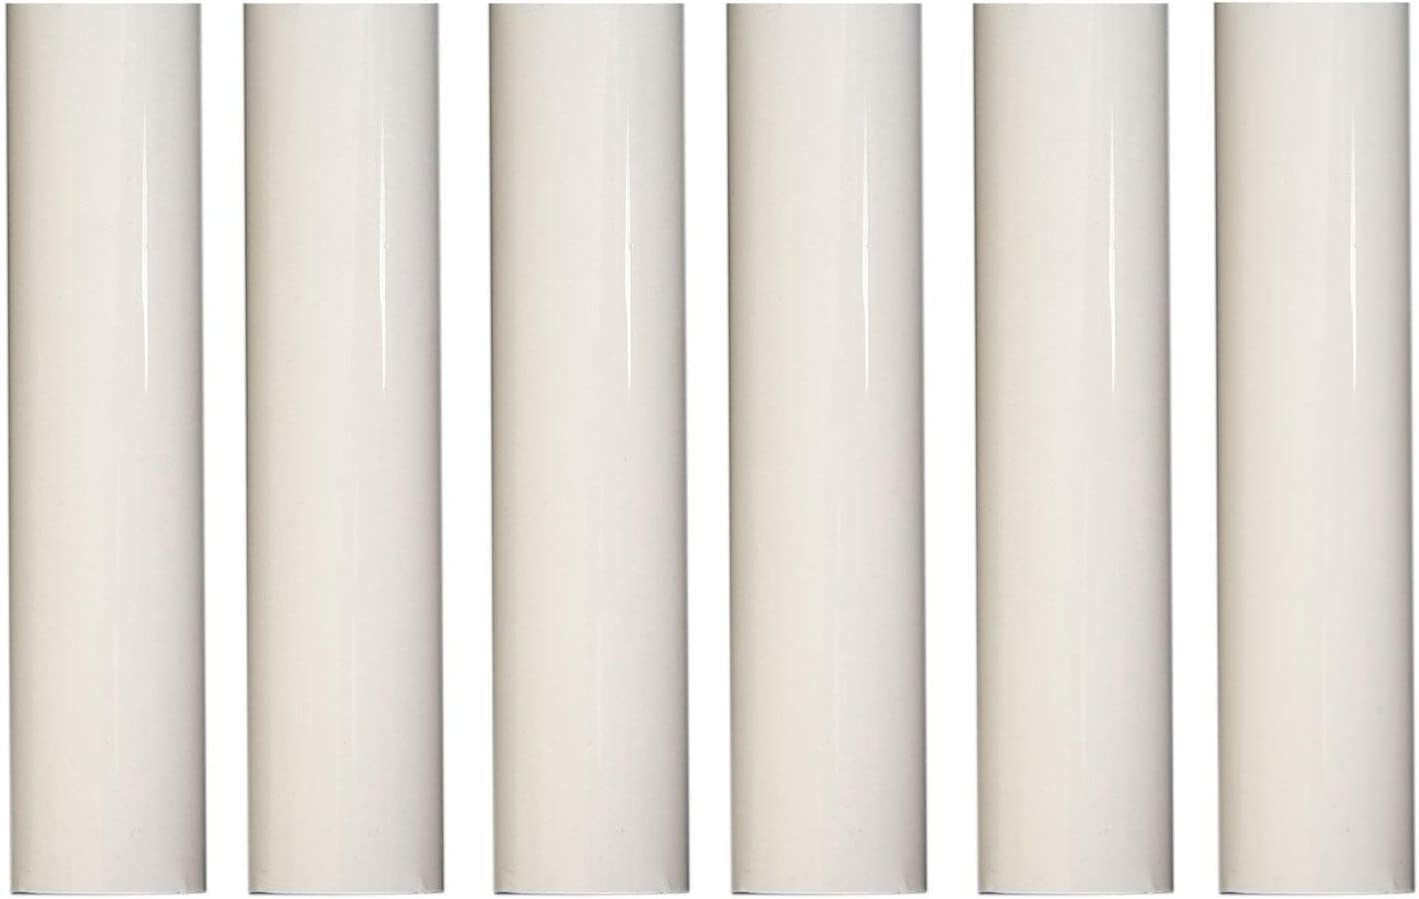 Set of 6 4 Inch Tall White Plastic Candle Covers Socket Creative Hobbies 1751